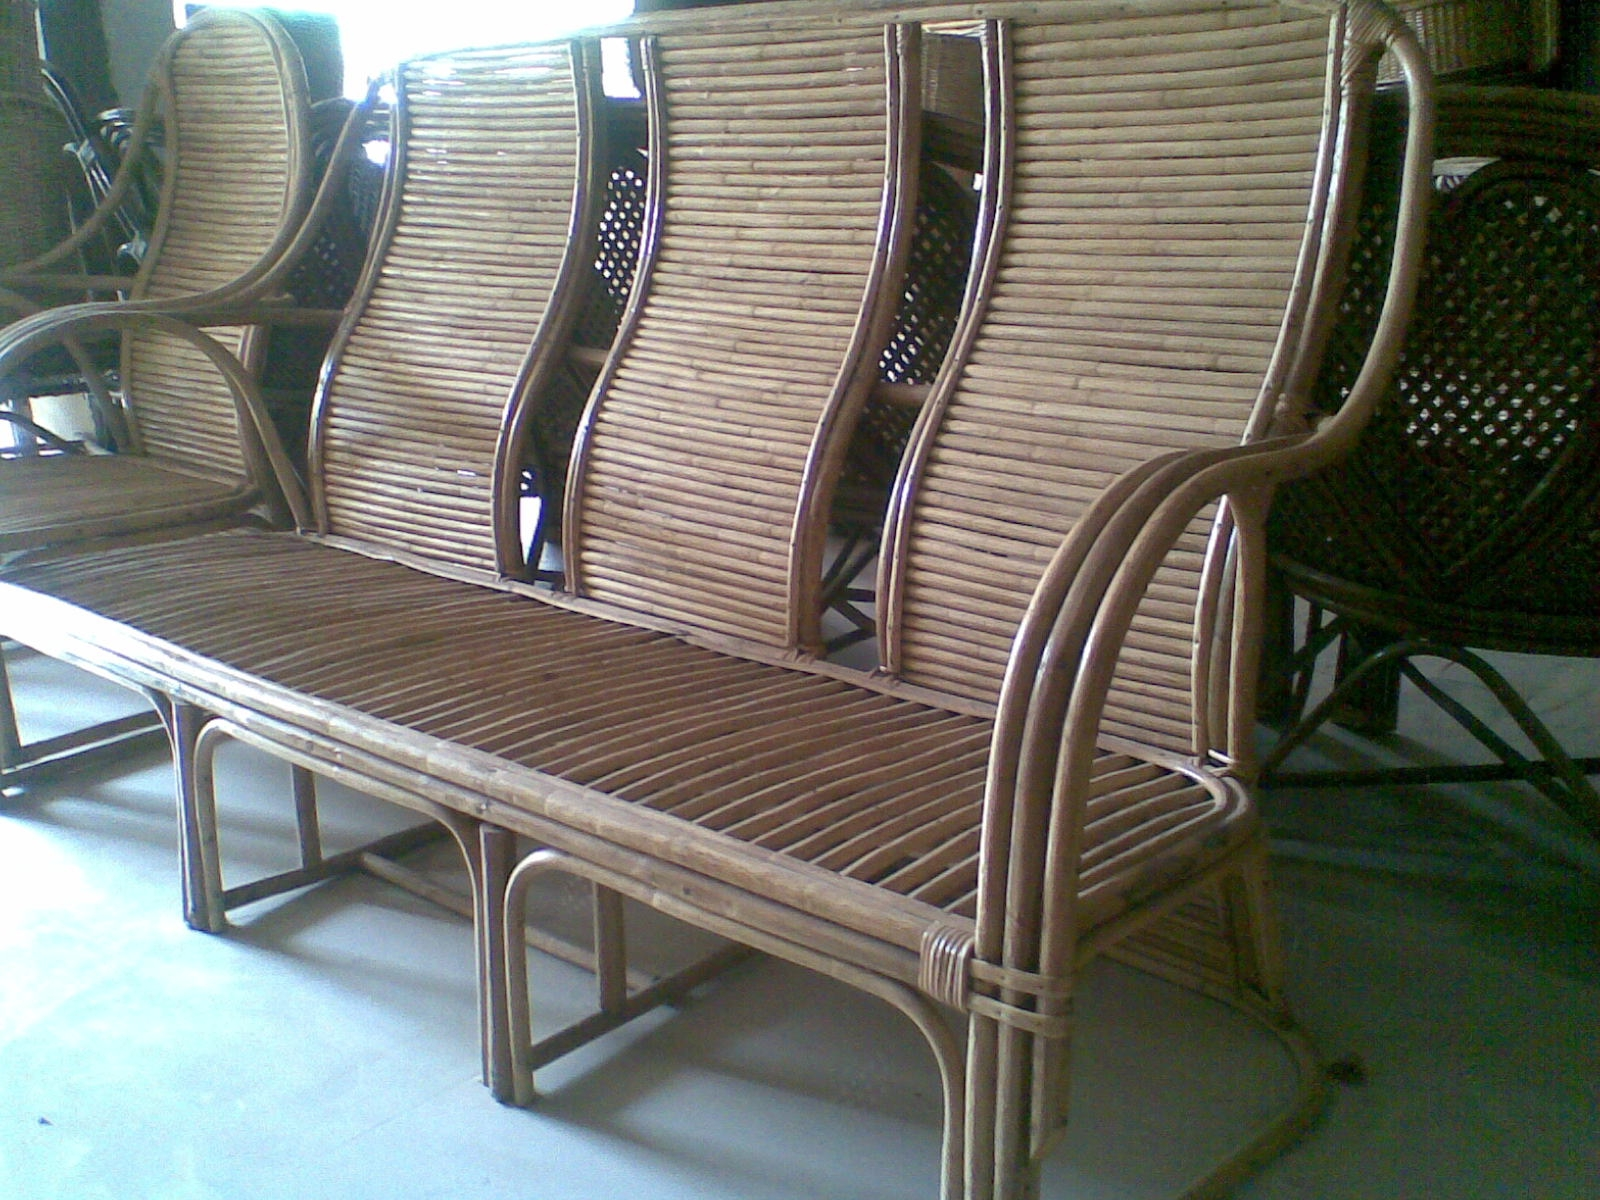 Sofa Set Olx Chandigarh Cane Sofa Set Center Tipoy Cane Swings Dining Table